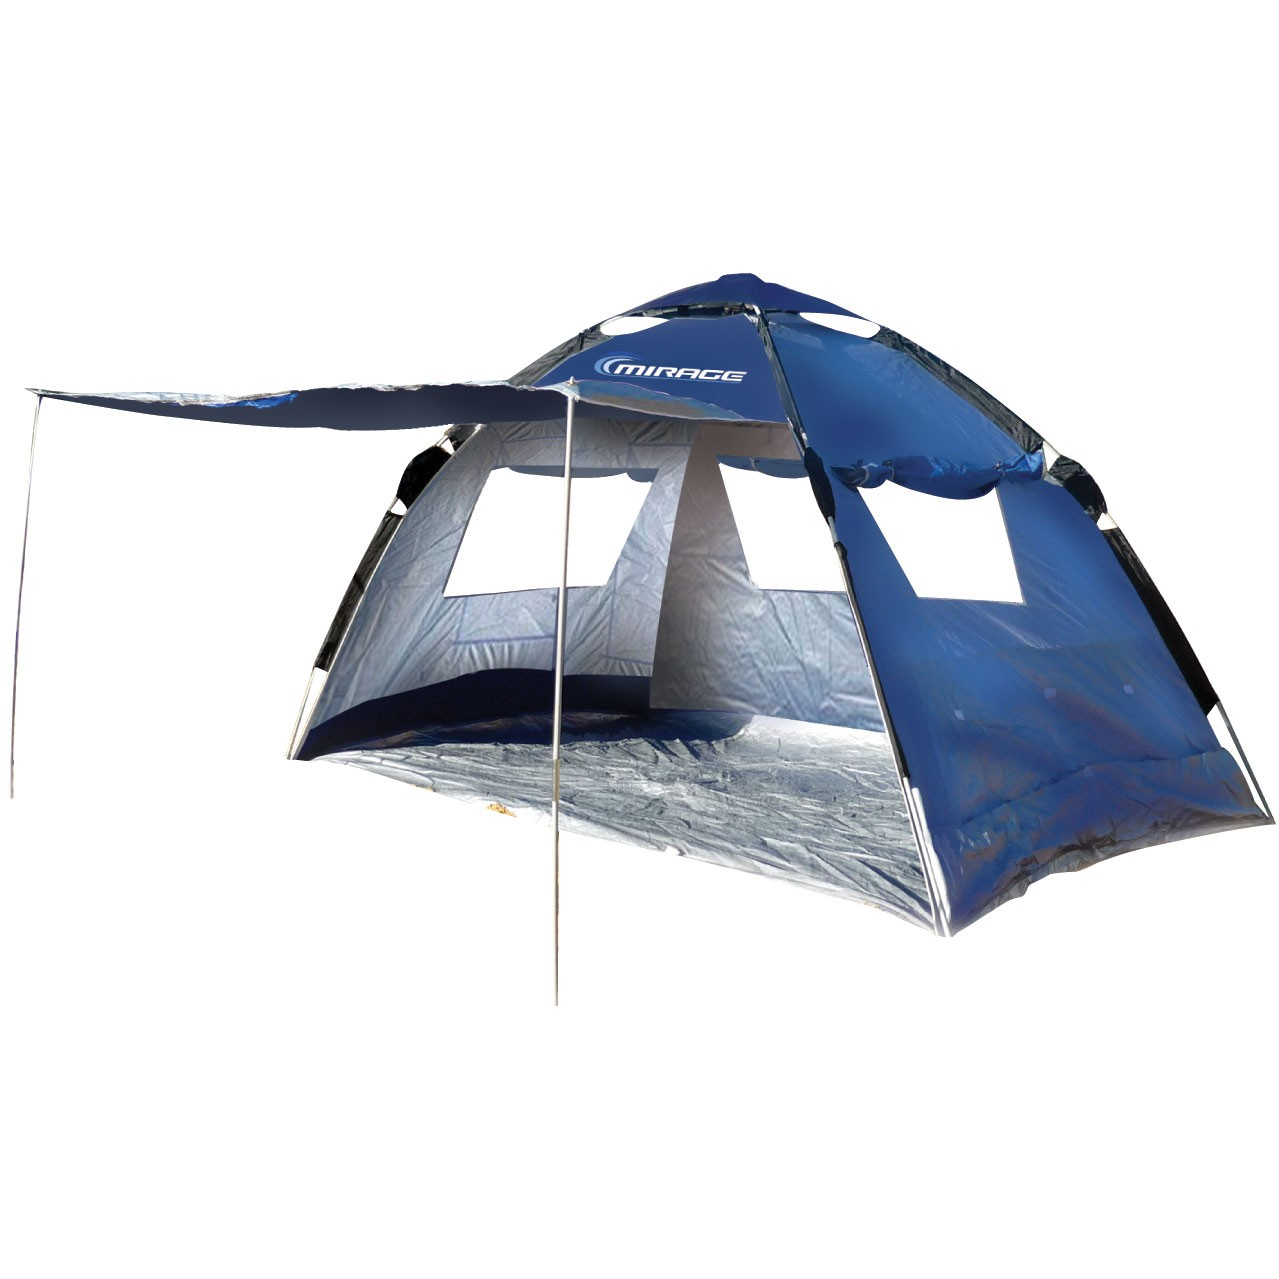 mirage eclipse beach tent shelter sun shade tent ebay. Black Bedroom Furniture Sets. Home Design Ideas